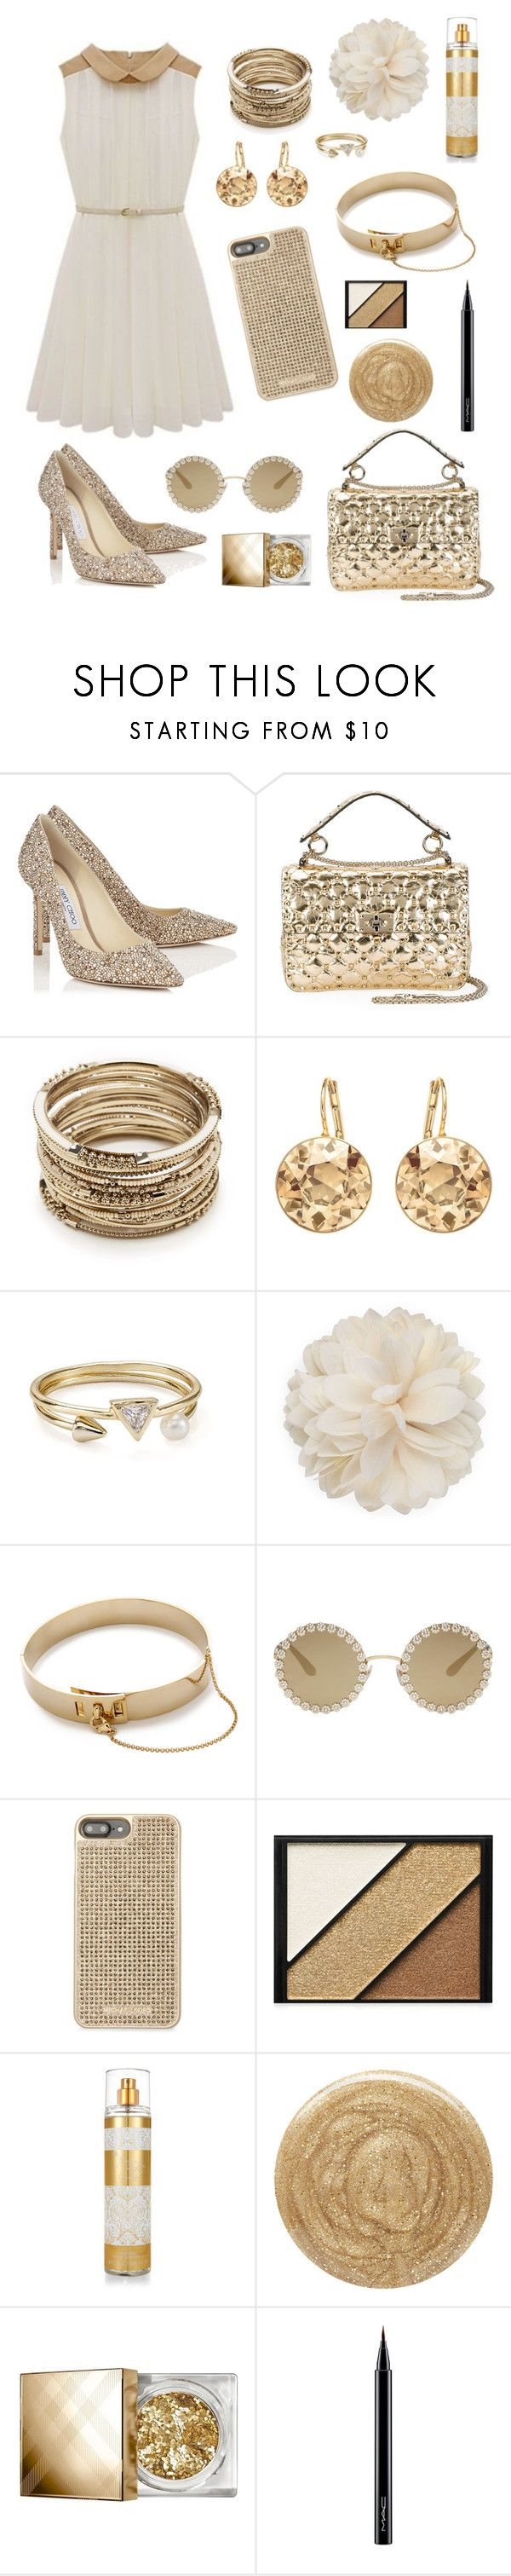 """""""Gold"""" by hanyou-mobster ❤ liked on Polyvore featuring Jimmy Choo, Valentino, Sole Society, Argento Vivo, Gucci, Eddie Borgo, Dolce&Gabbana, Michael Kors, Elizabeth Arden and Jessica Simpson"""